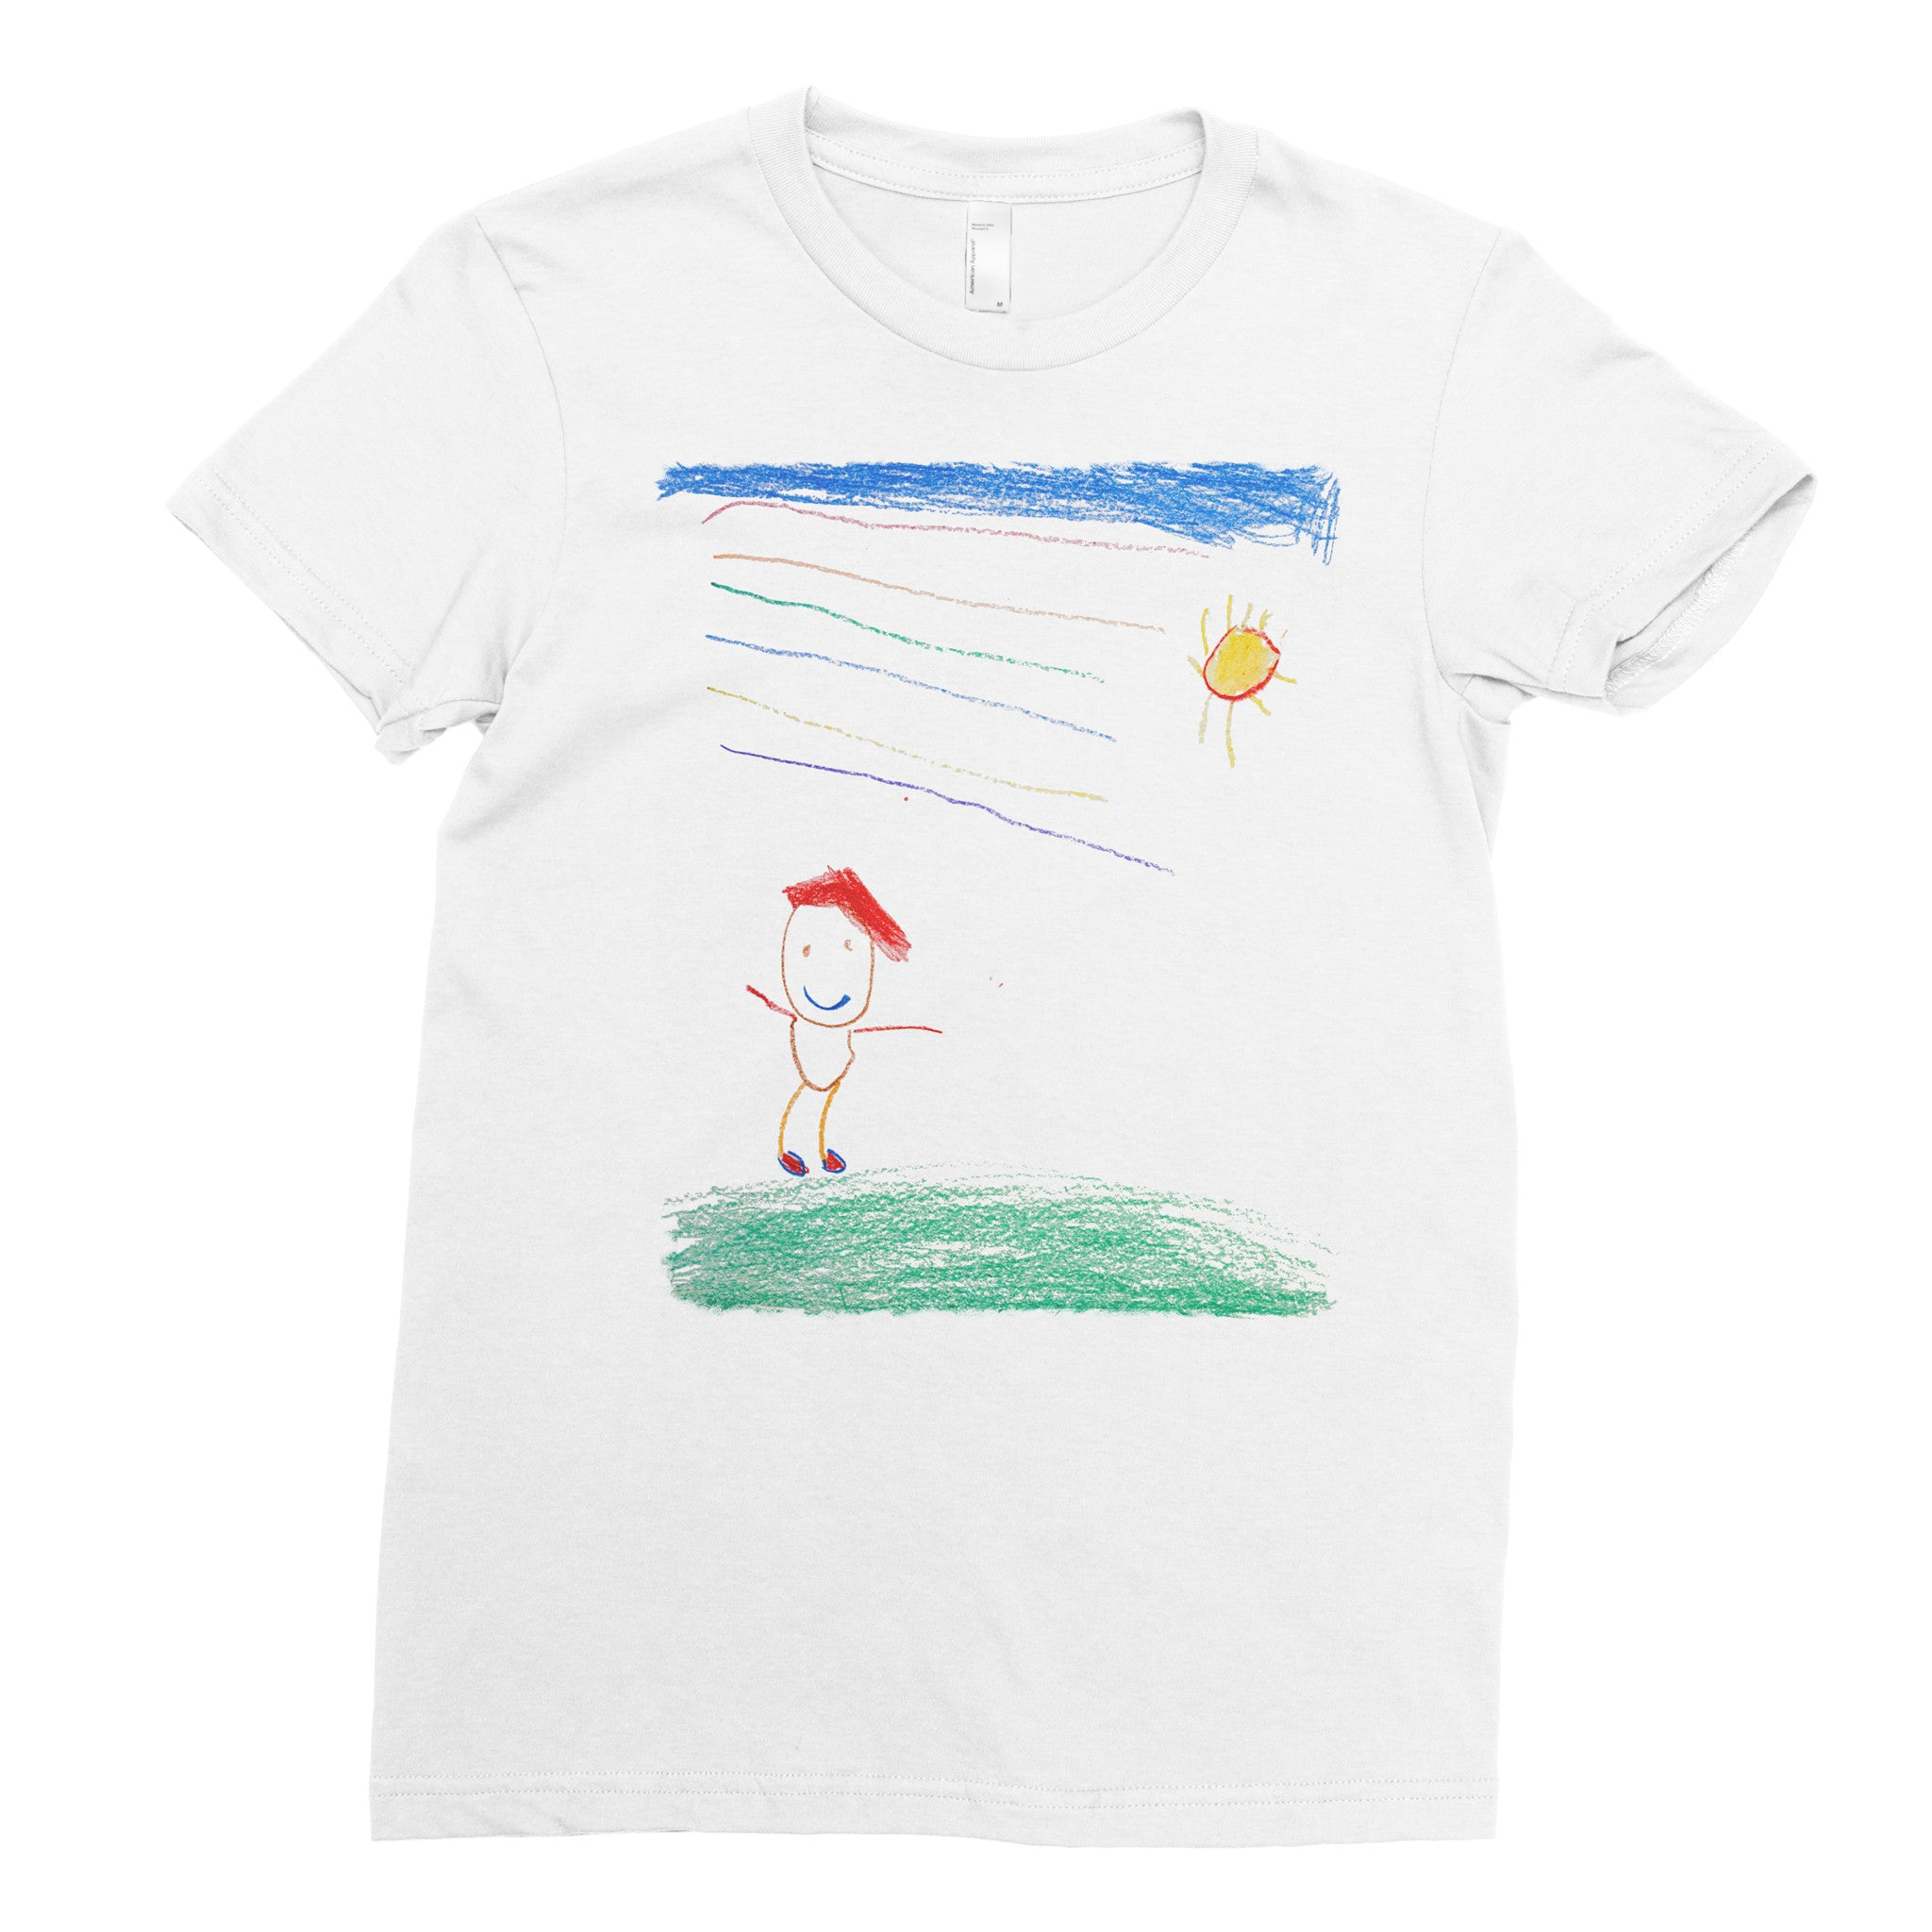 Safiya, kindergarten - Adult T-shirt - Rightside Shirts